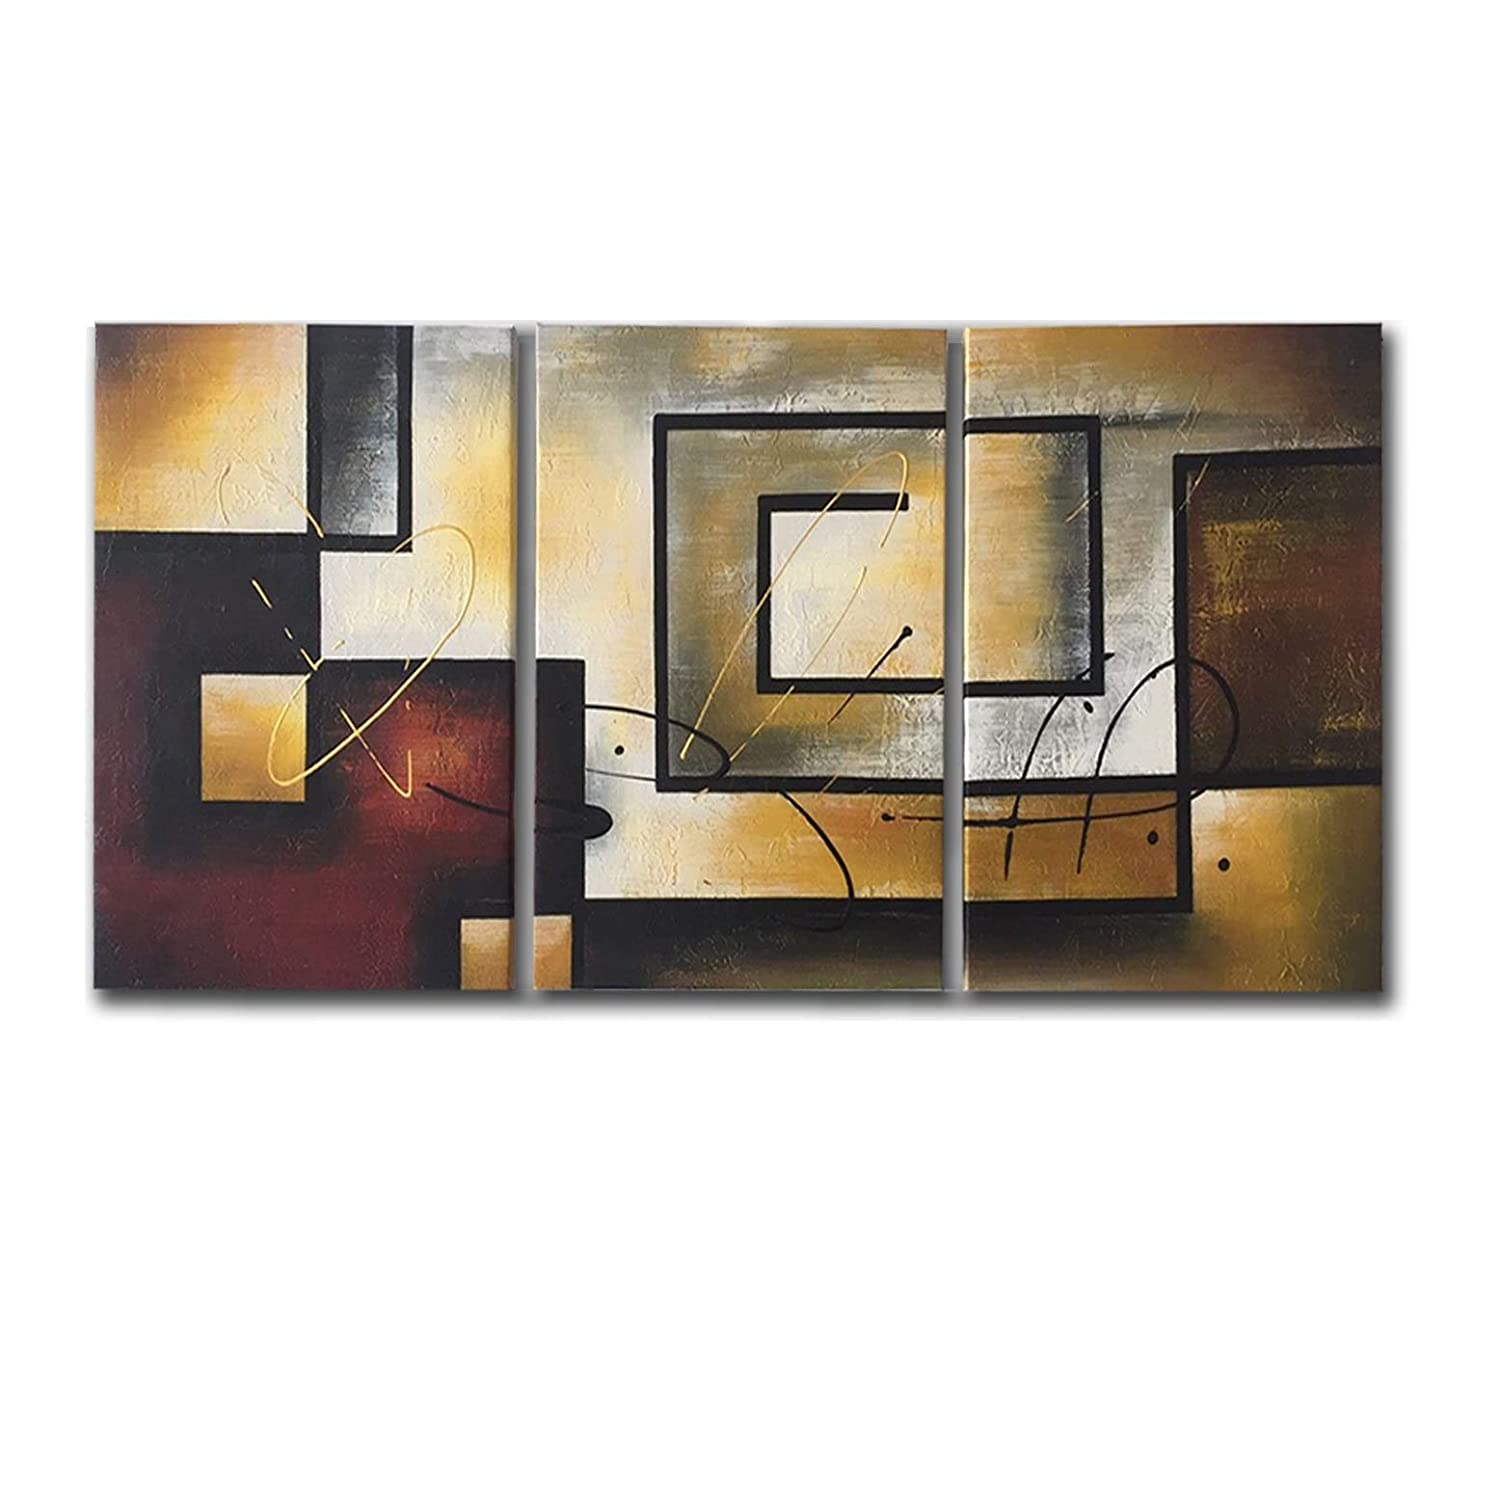 Mon art contemporary art abstract paintings reproduction canvas framed canvas wall art for home decor 3 panels wall decorations for living room bedroom